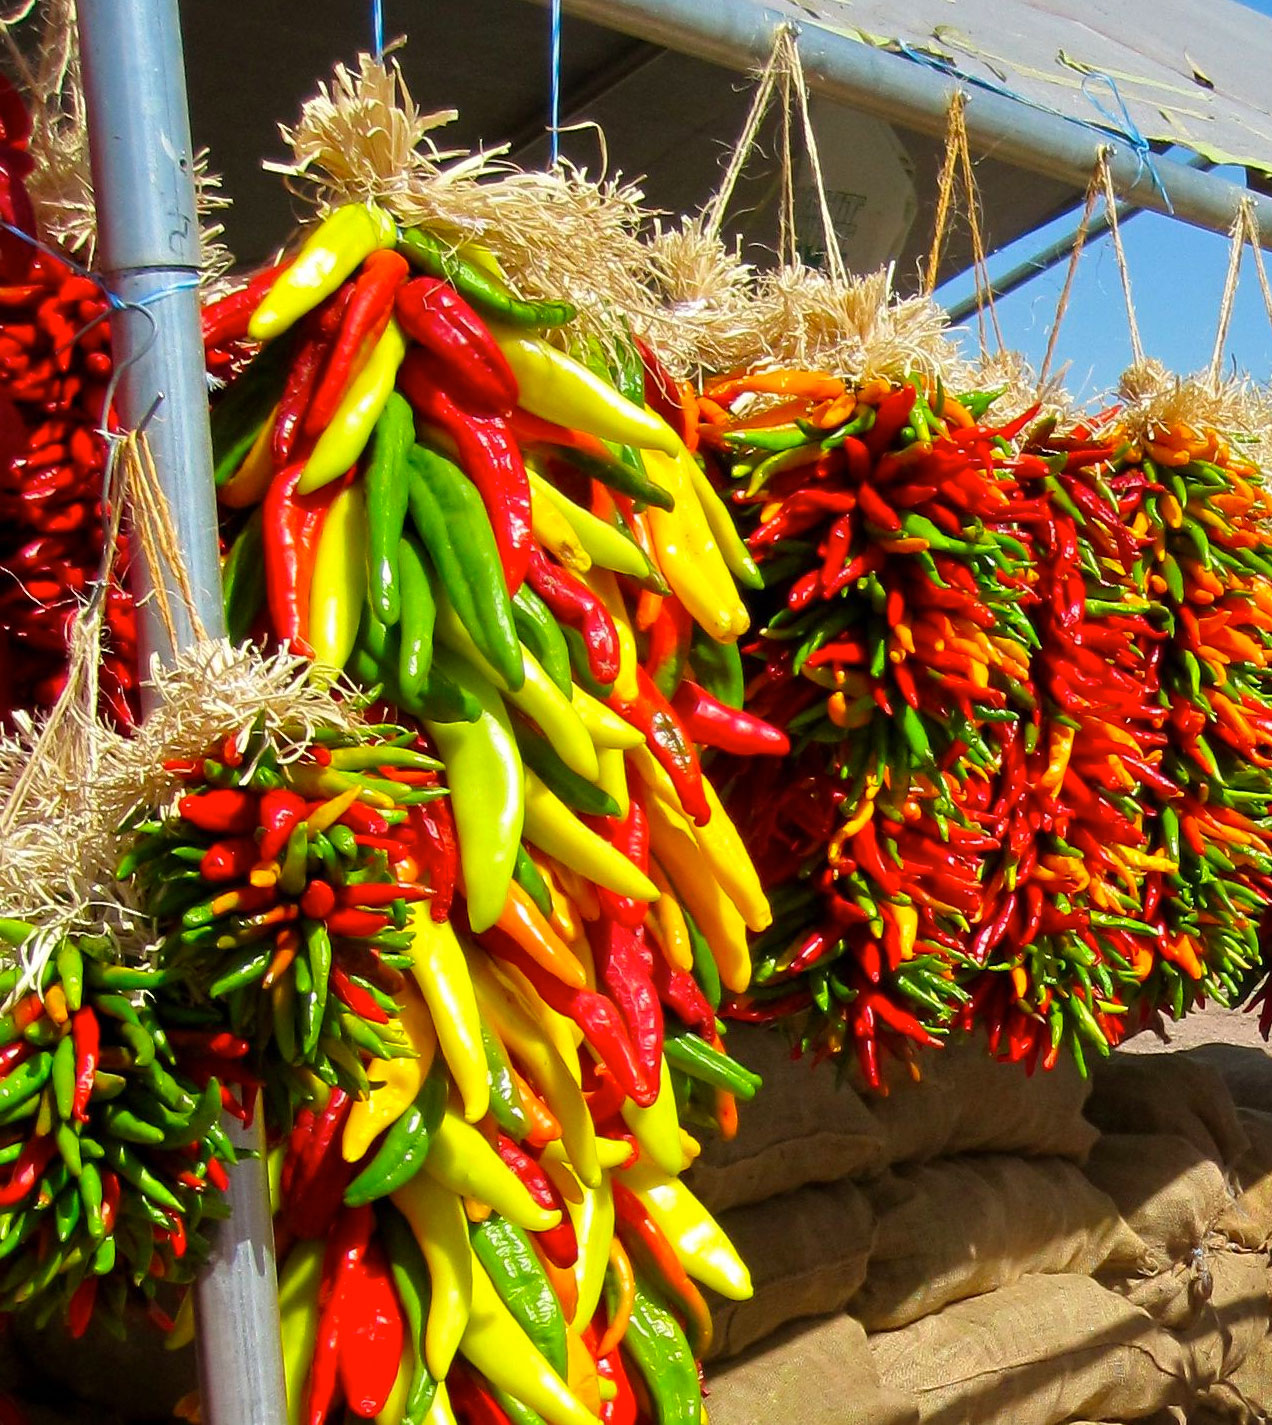 Ornamental Peppers - can be dried into Ristras